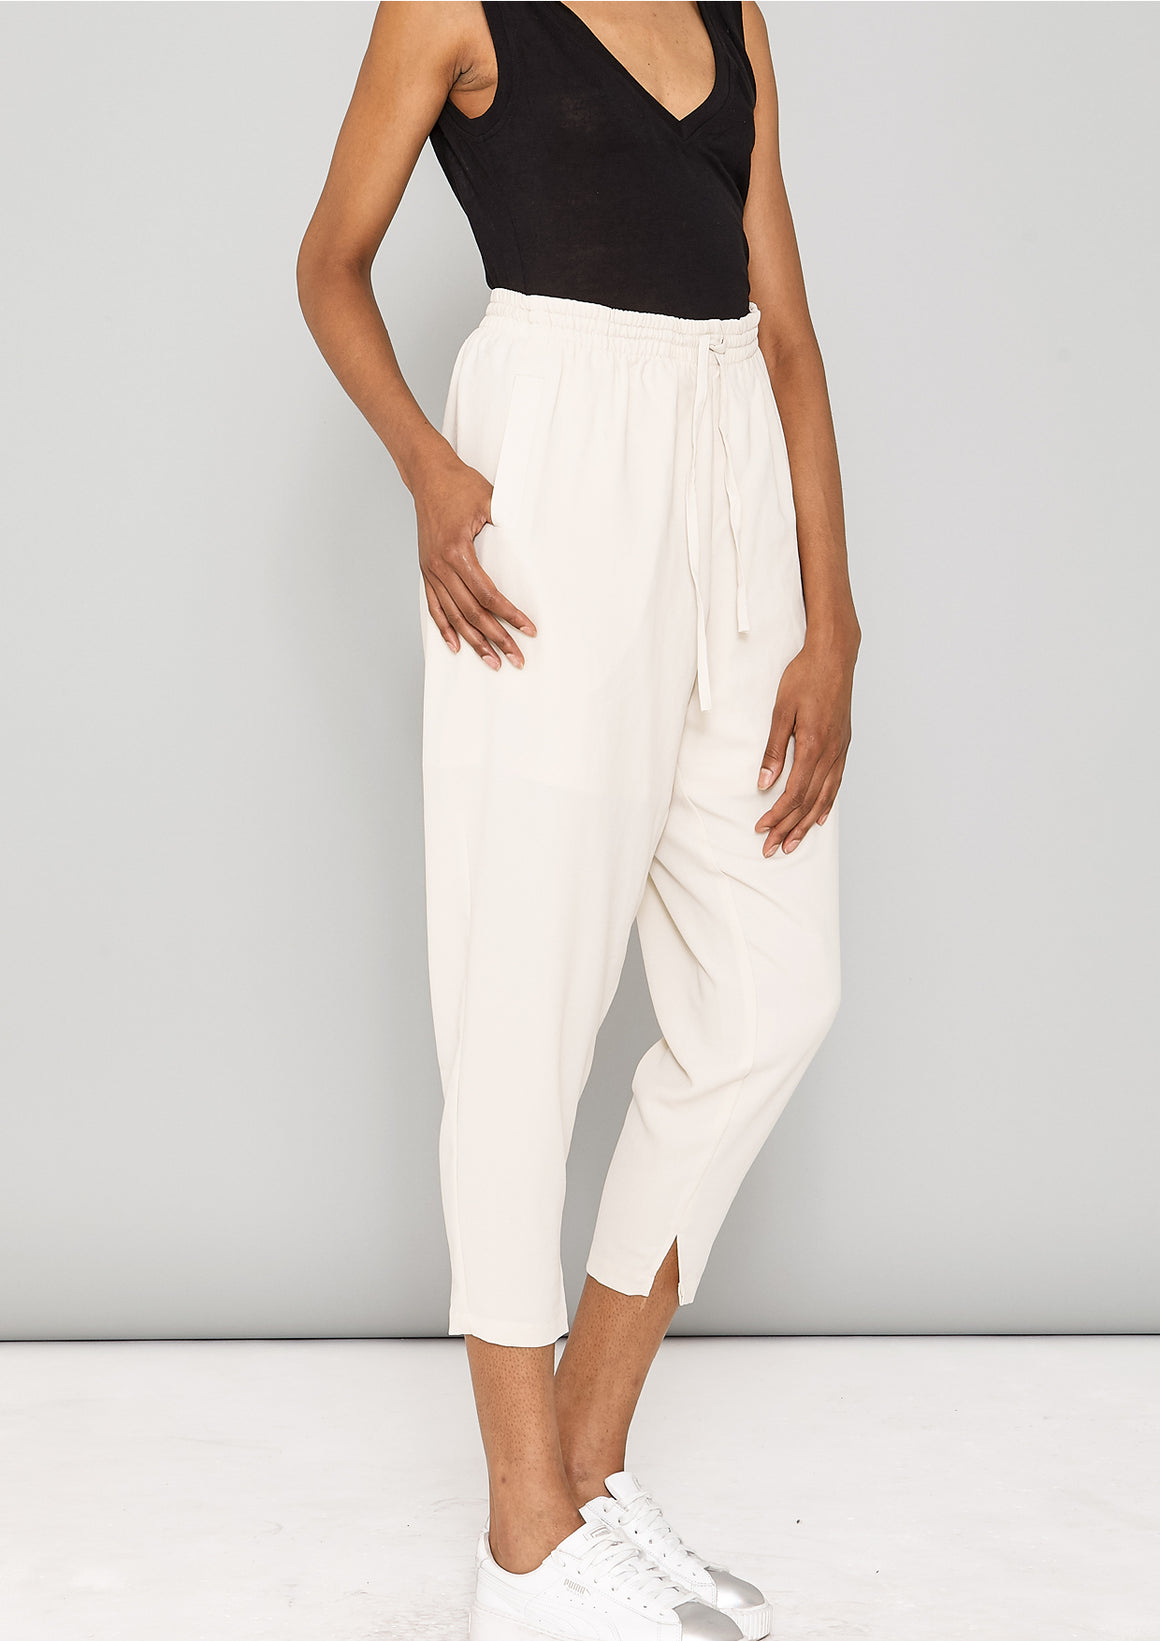 PANTS LOOSE ELASTIC - SILKY STRETCH CREPE beige